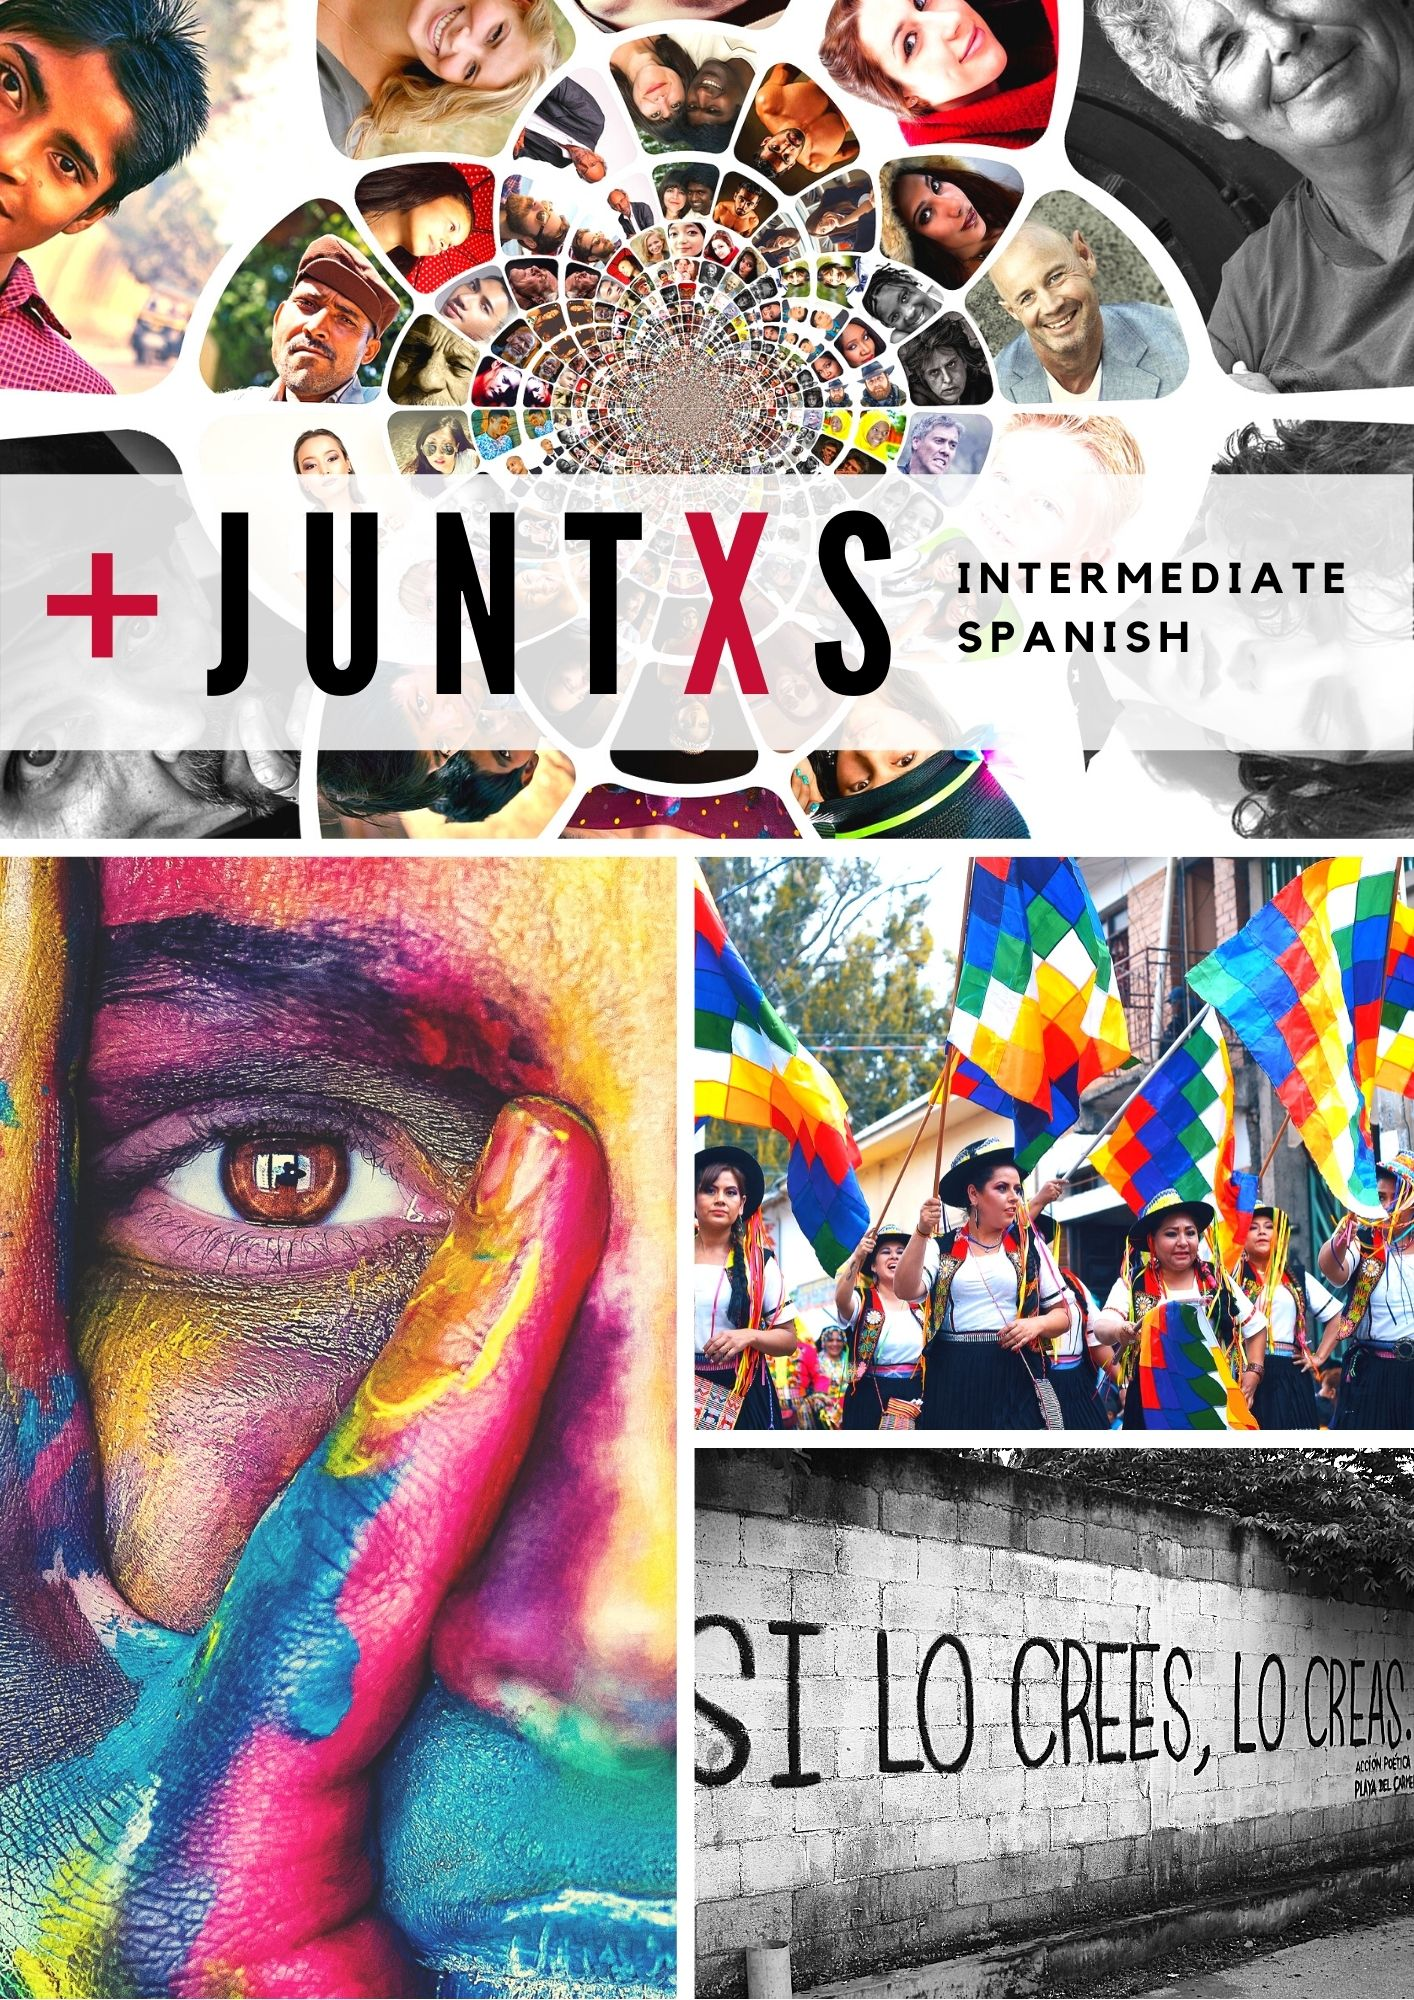 Cover image for + JUNTXS